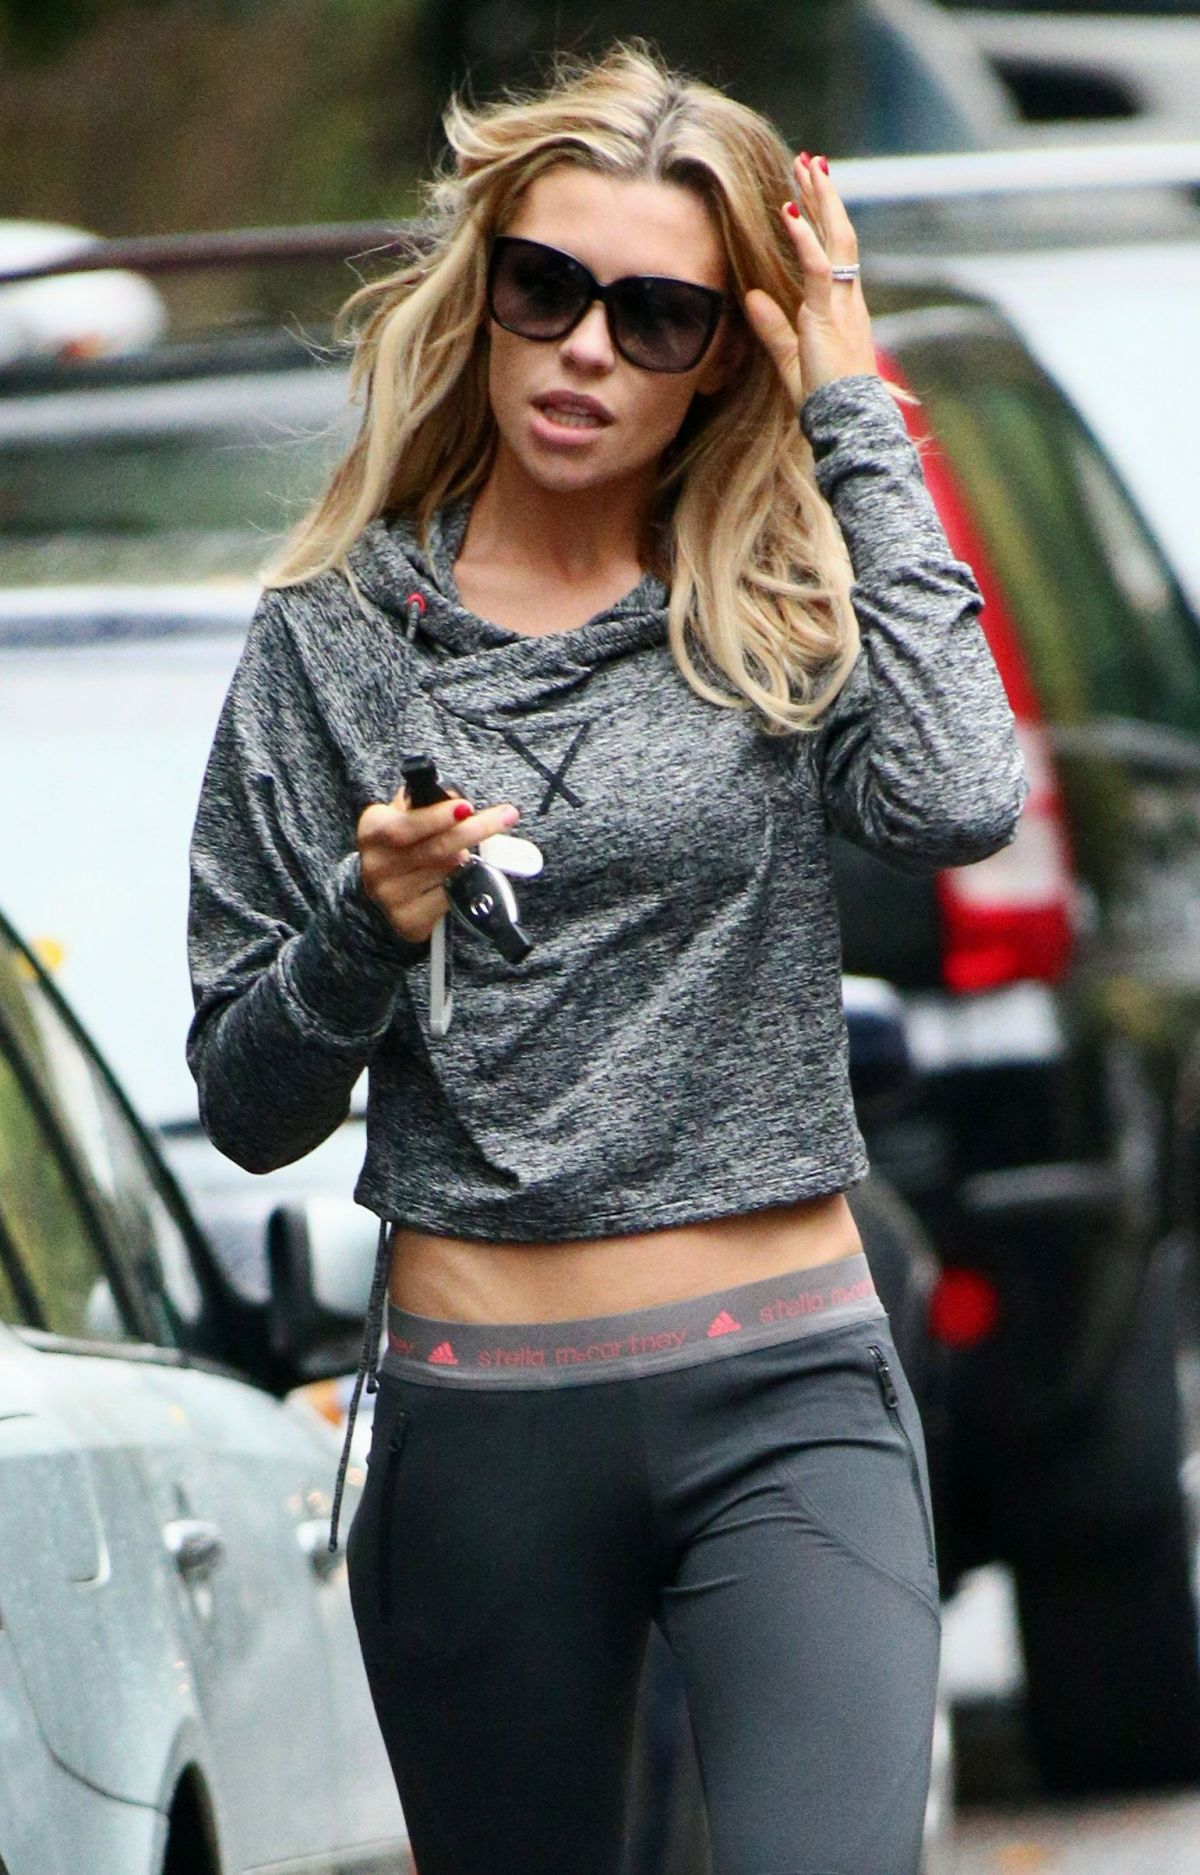 Abbey Clancy Crouch At Yoga Pants Out In London - Celebzz ...